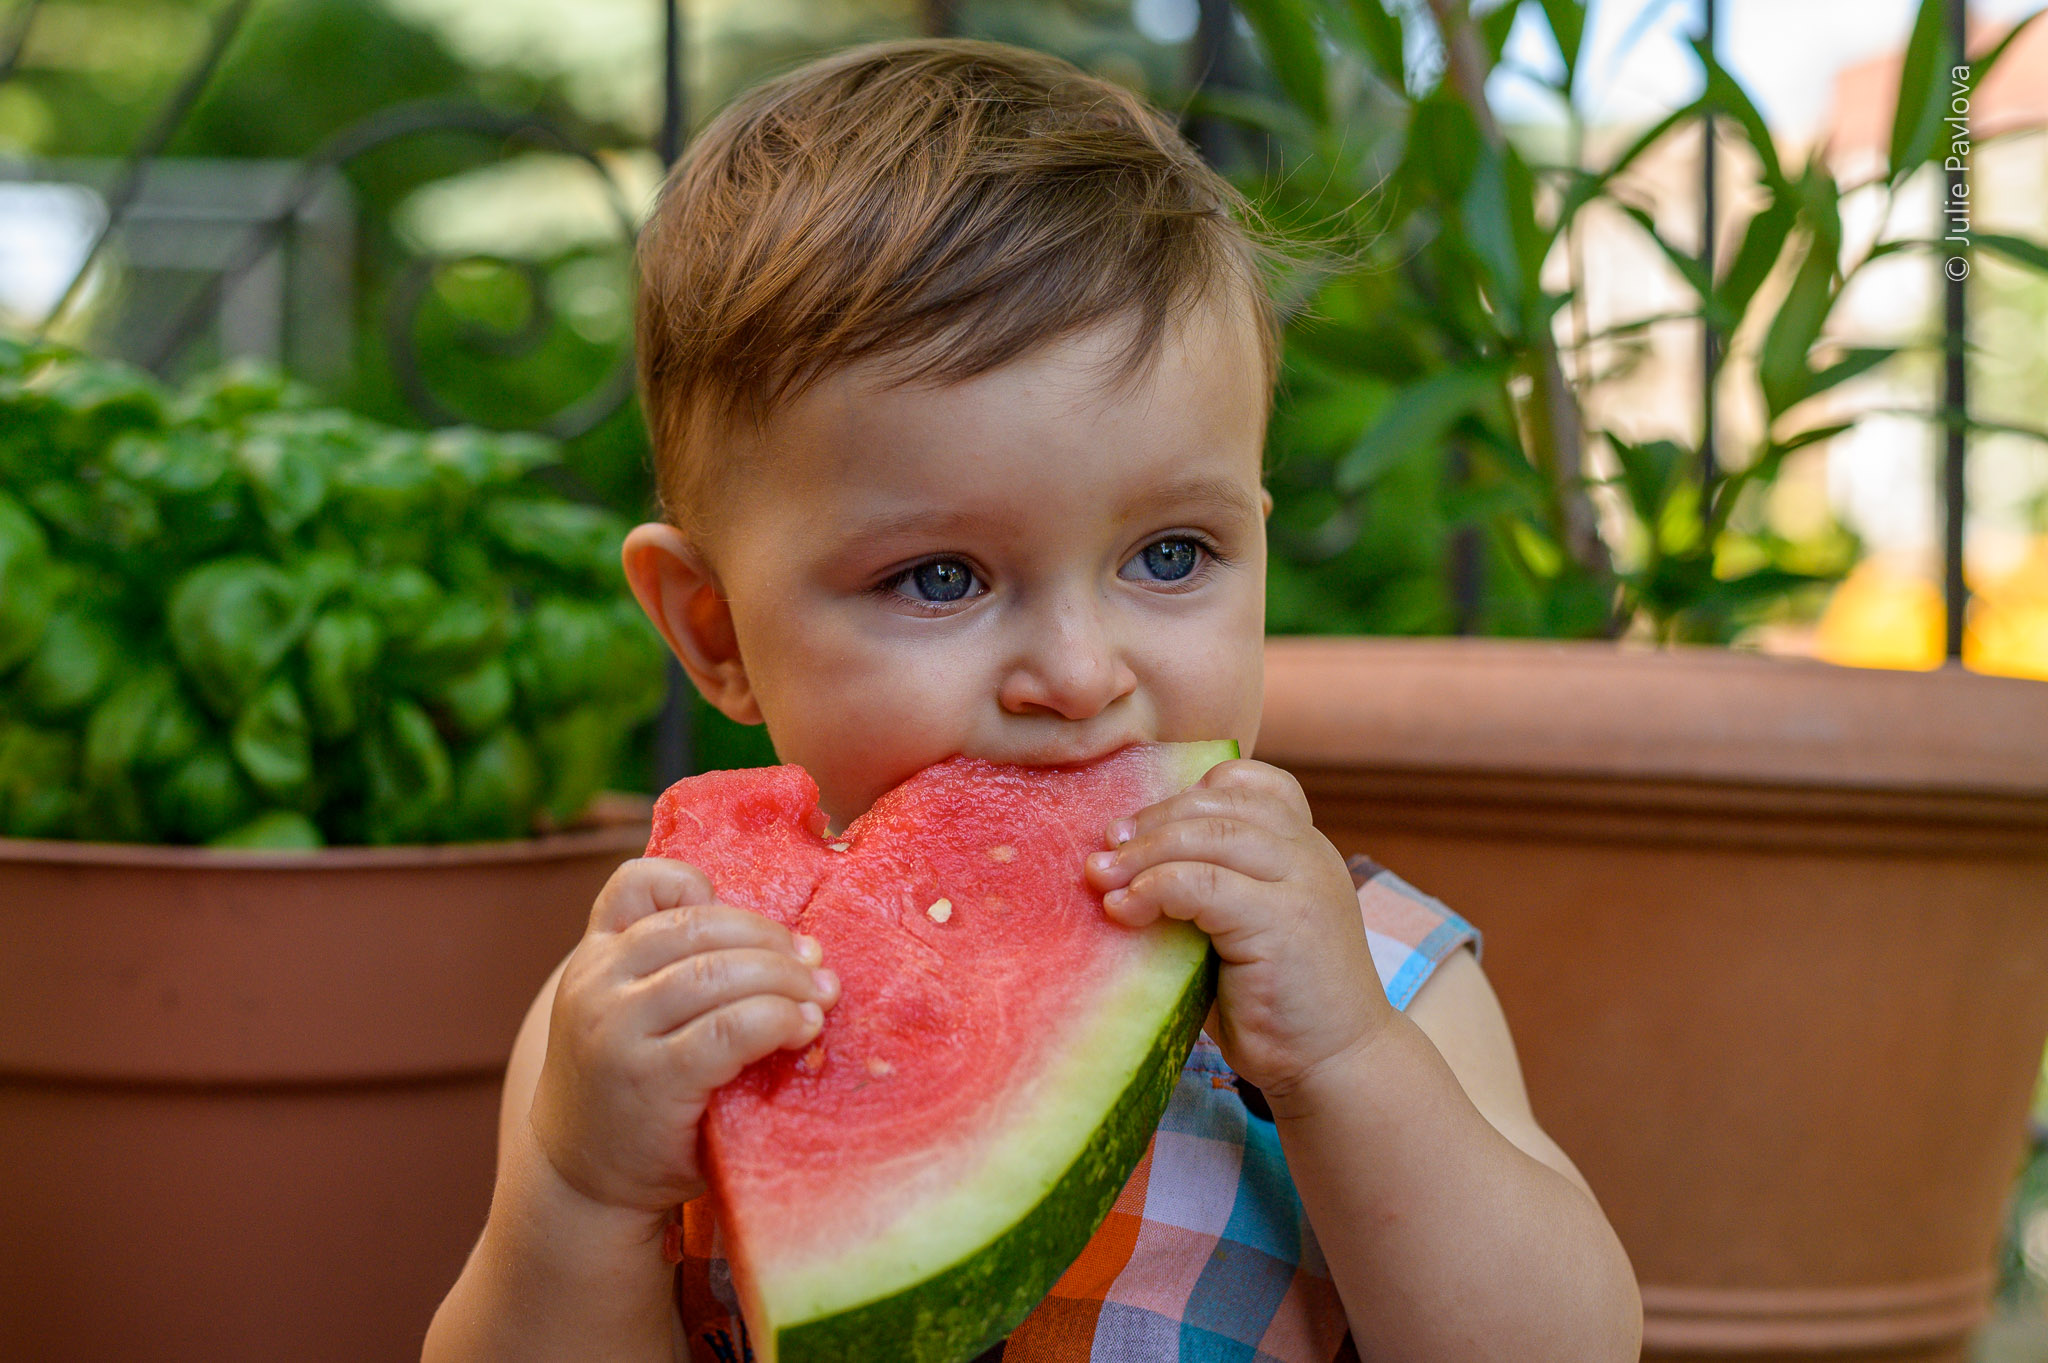 Sitter session. Watermelon session. Kids photography by New York and New Jersey photographer Julie Pavlova. The best New York photographer, family pictures, family photography in New York, New Jersey